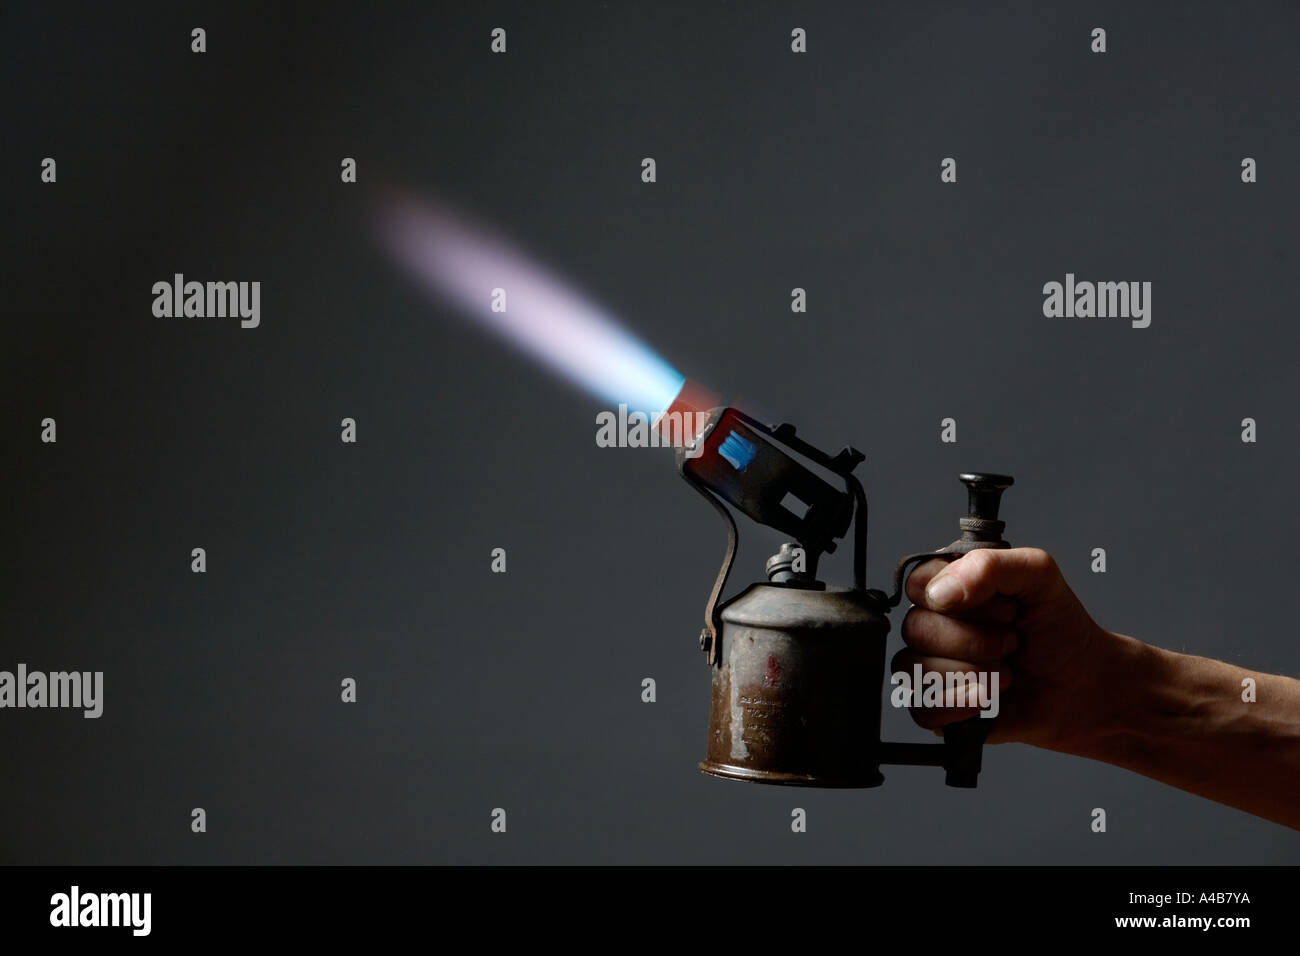 Old blow-lamp 3 - Stock Image